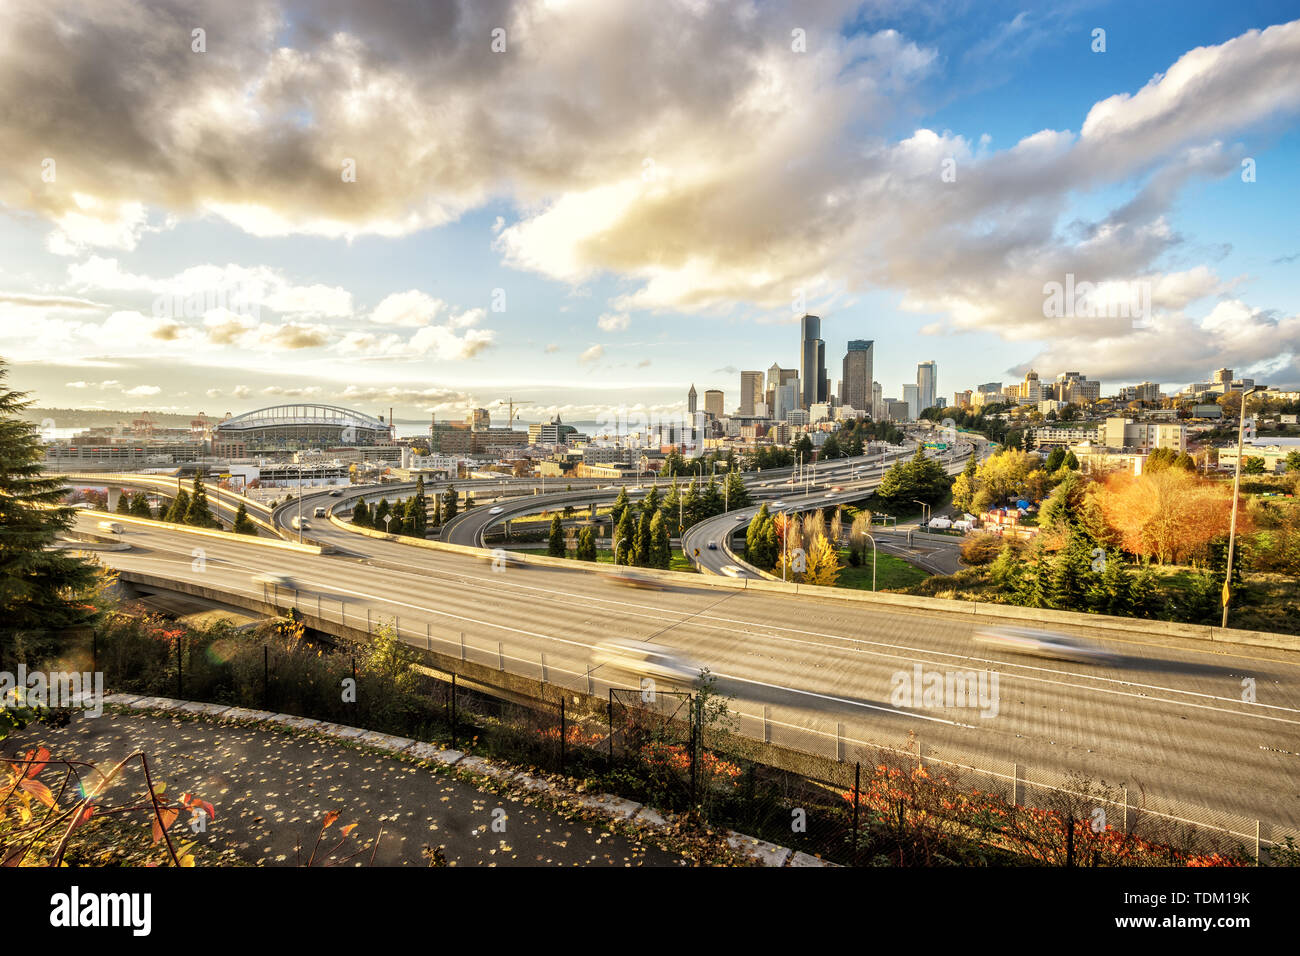 cityscape of los angeles and busy elevated road - Stock Image